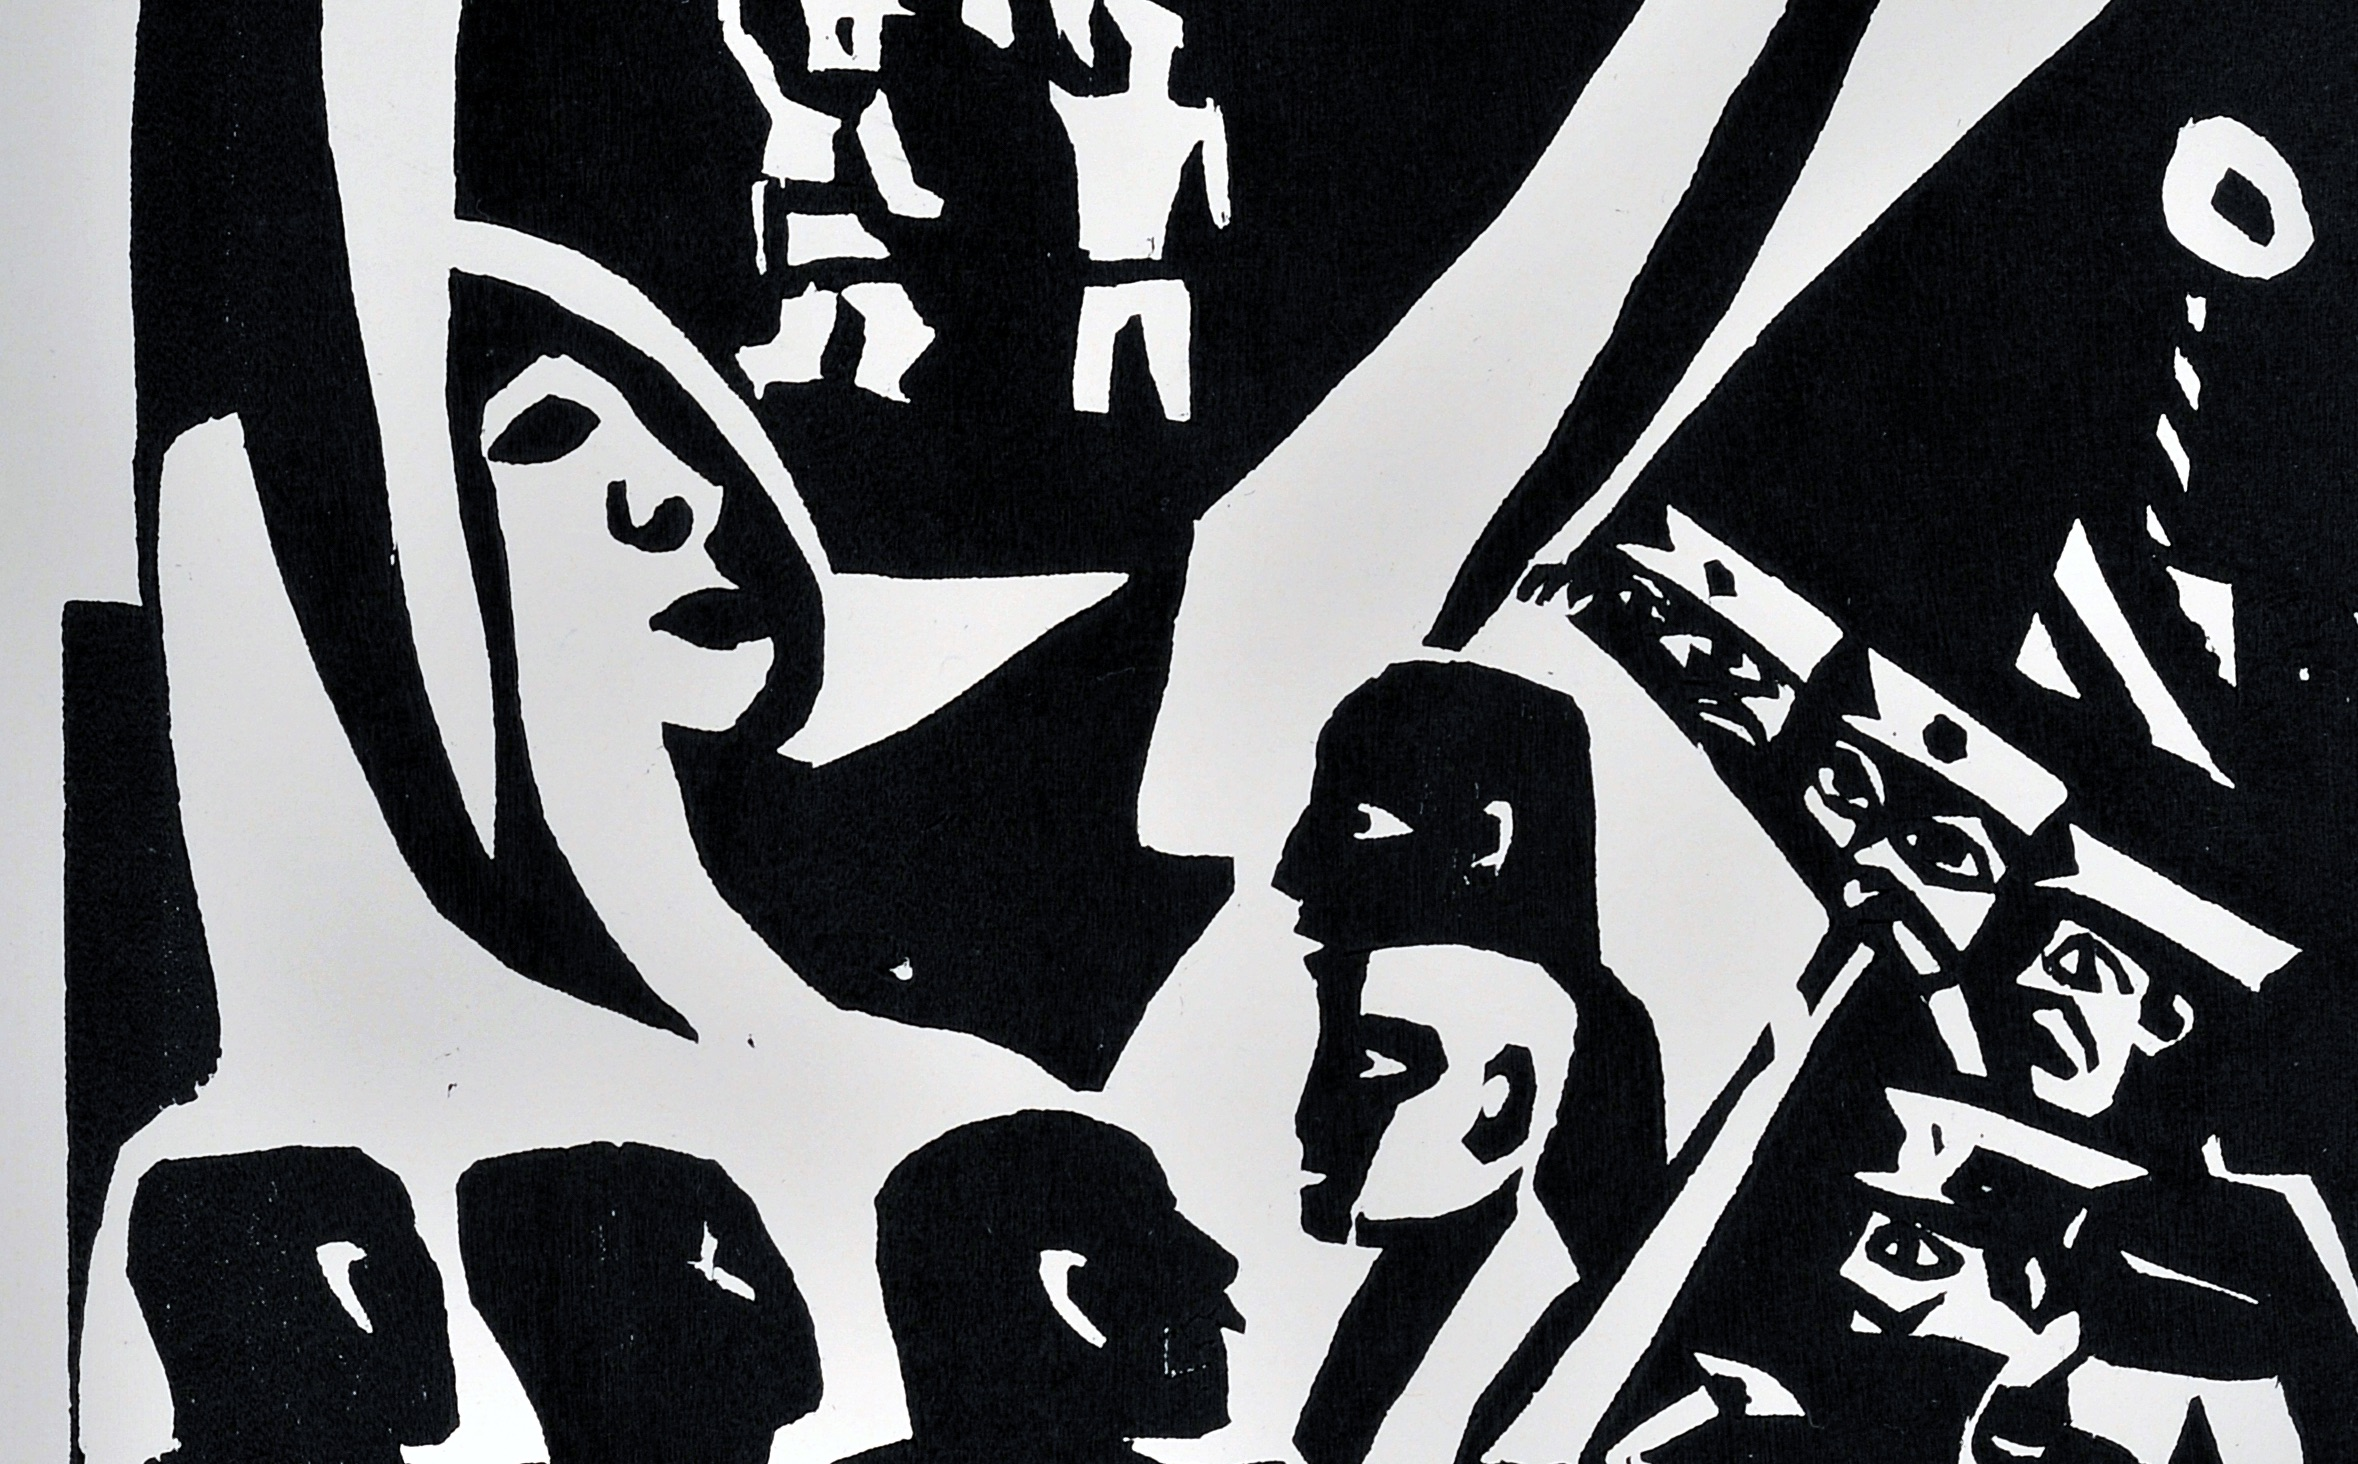 José Chávez Morado La conspiración [Conspiracy], from the portfolio Vida nocturna de la ciudad de México [Mexico City's Nightlife], 1936 (detail) Linocut The Blanton Museum of Art, The University of Texas at Austin University purchase, 1966; Transfer from the Harry Ransom Center, 1982